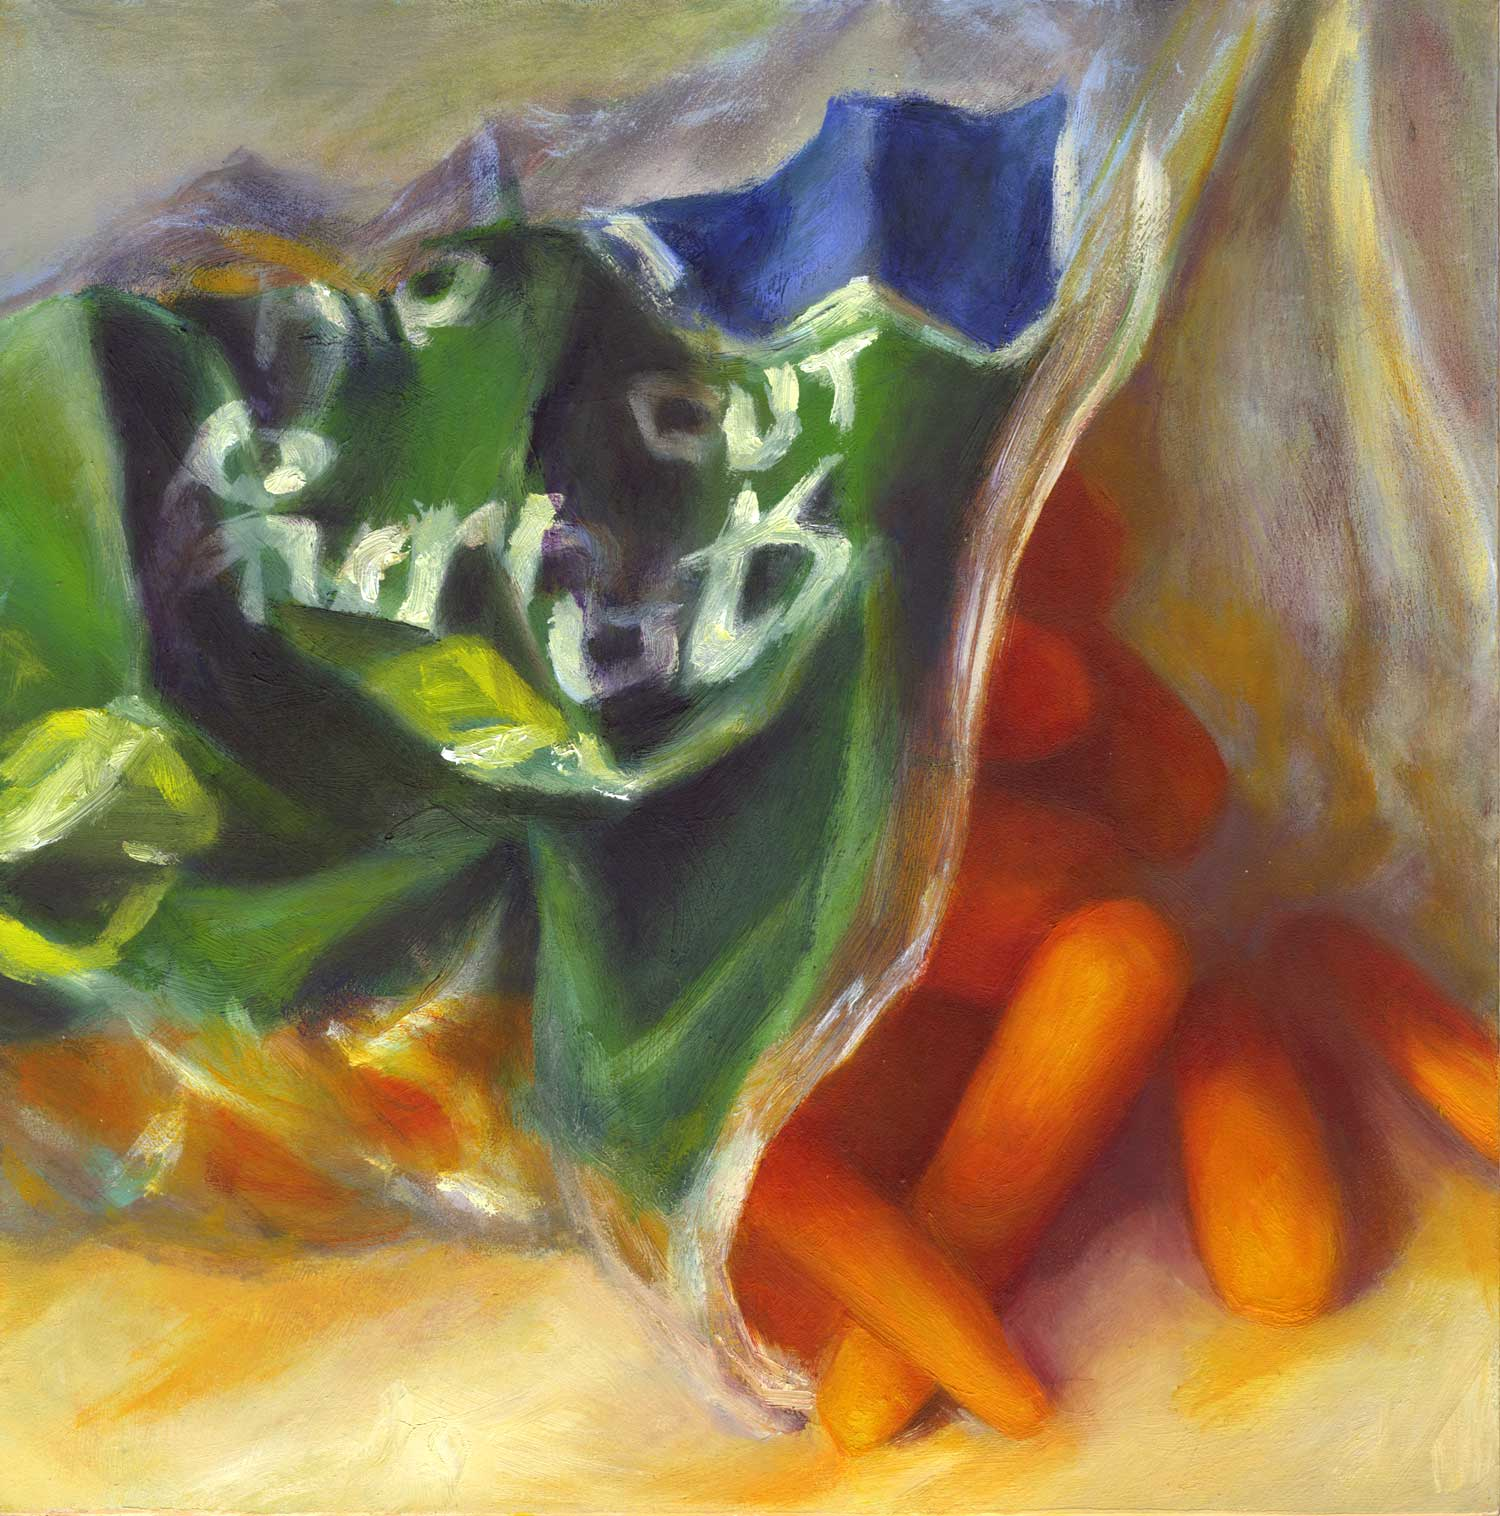 baby-carrots-plastic-bag-still-life-oil-painting.jpg